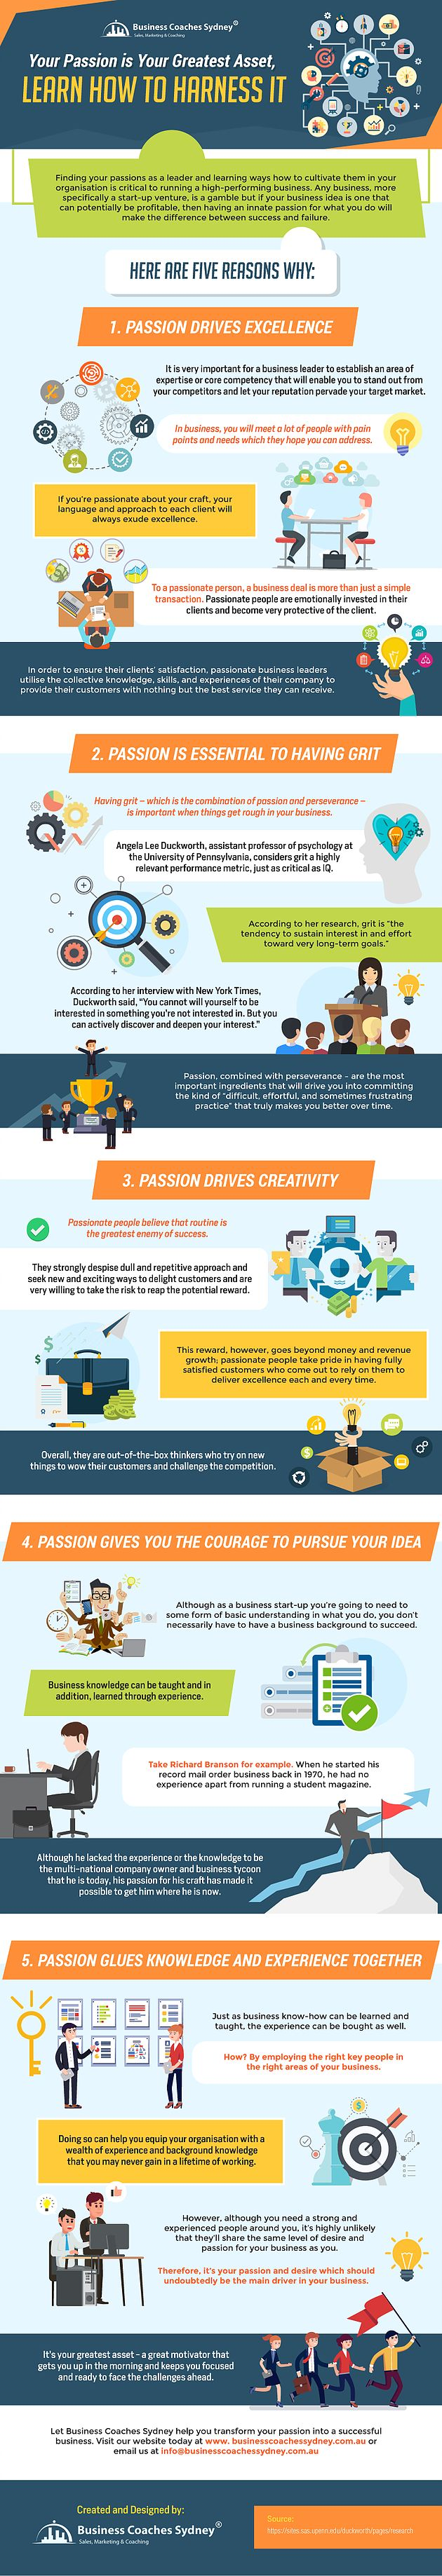 Your Passion is Your Greatest Asset, Learn How to Harness It - #Infographic